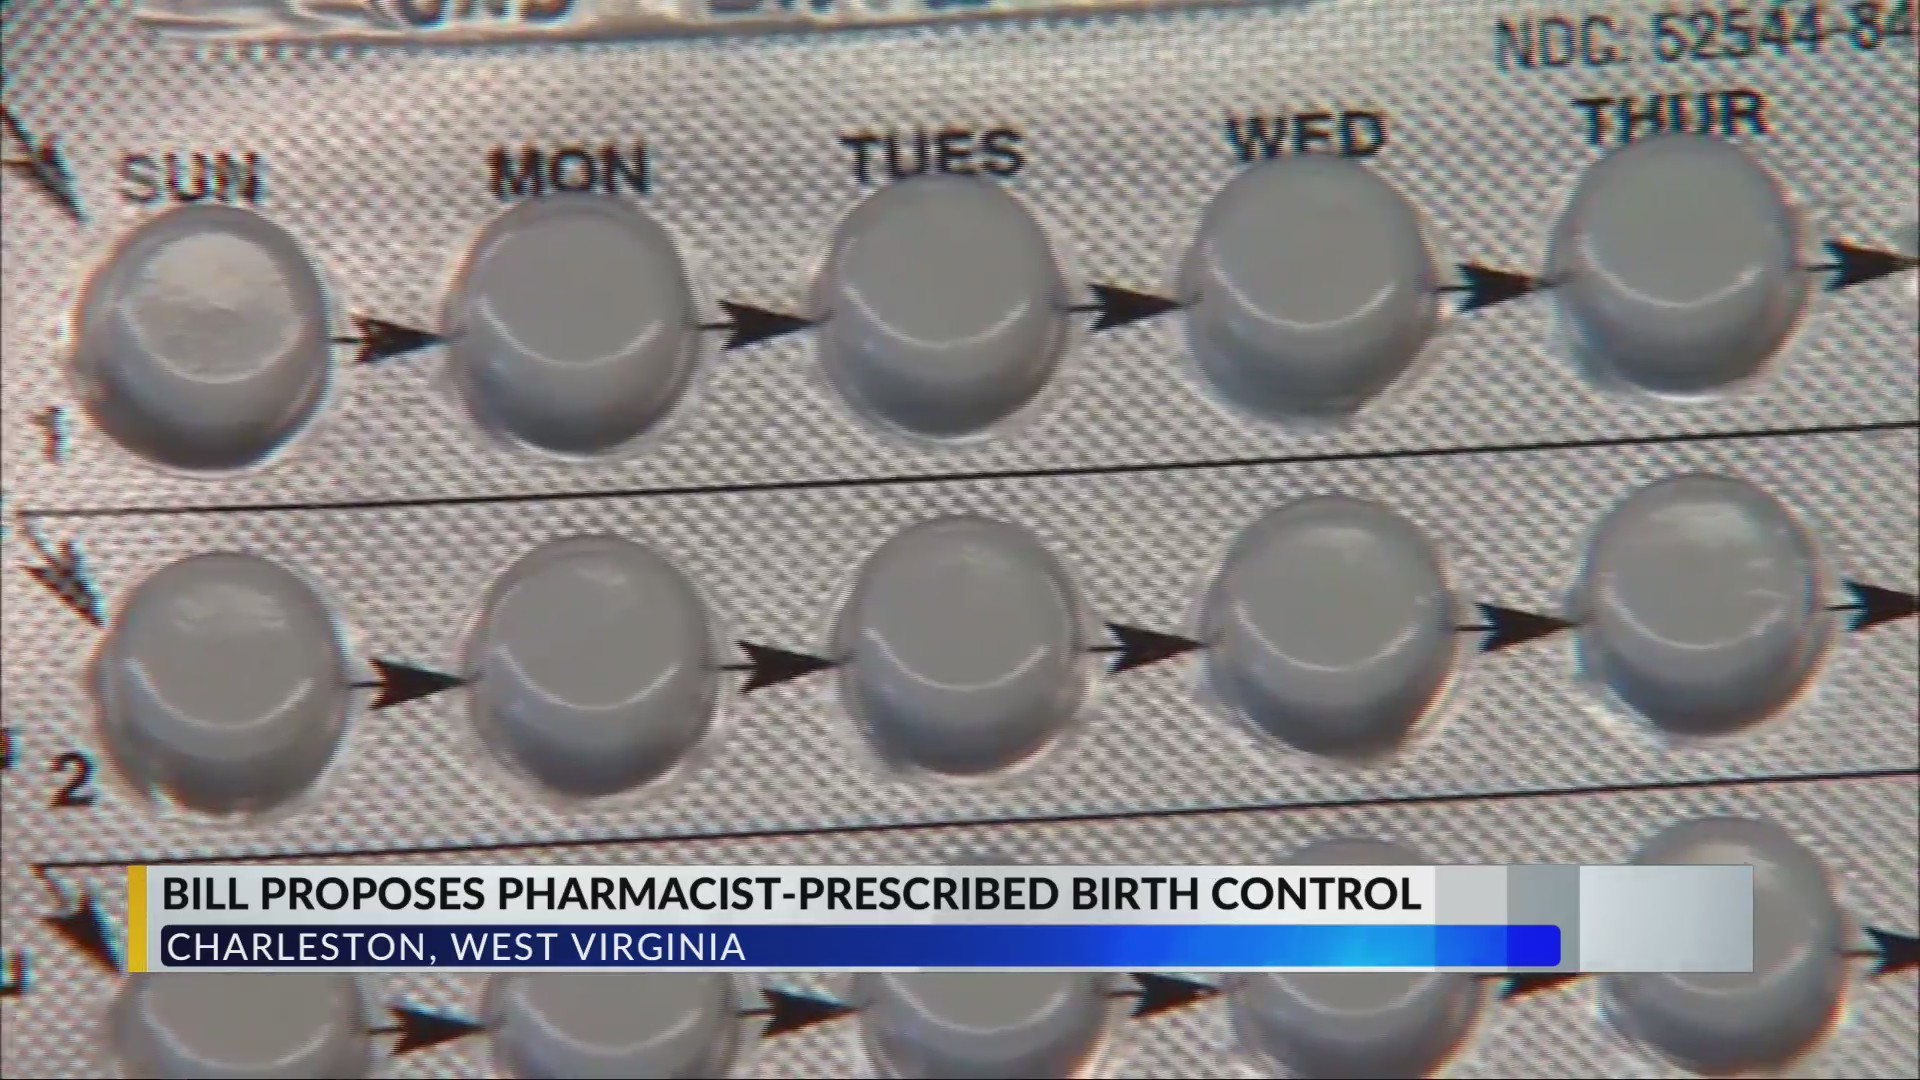 Bill Proposes Pharmacist-Prescribed Birth Control